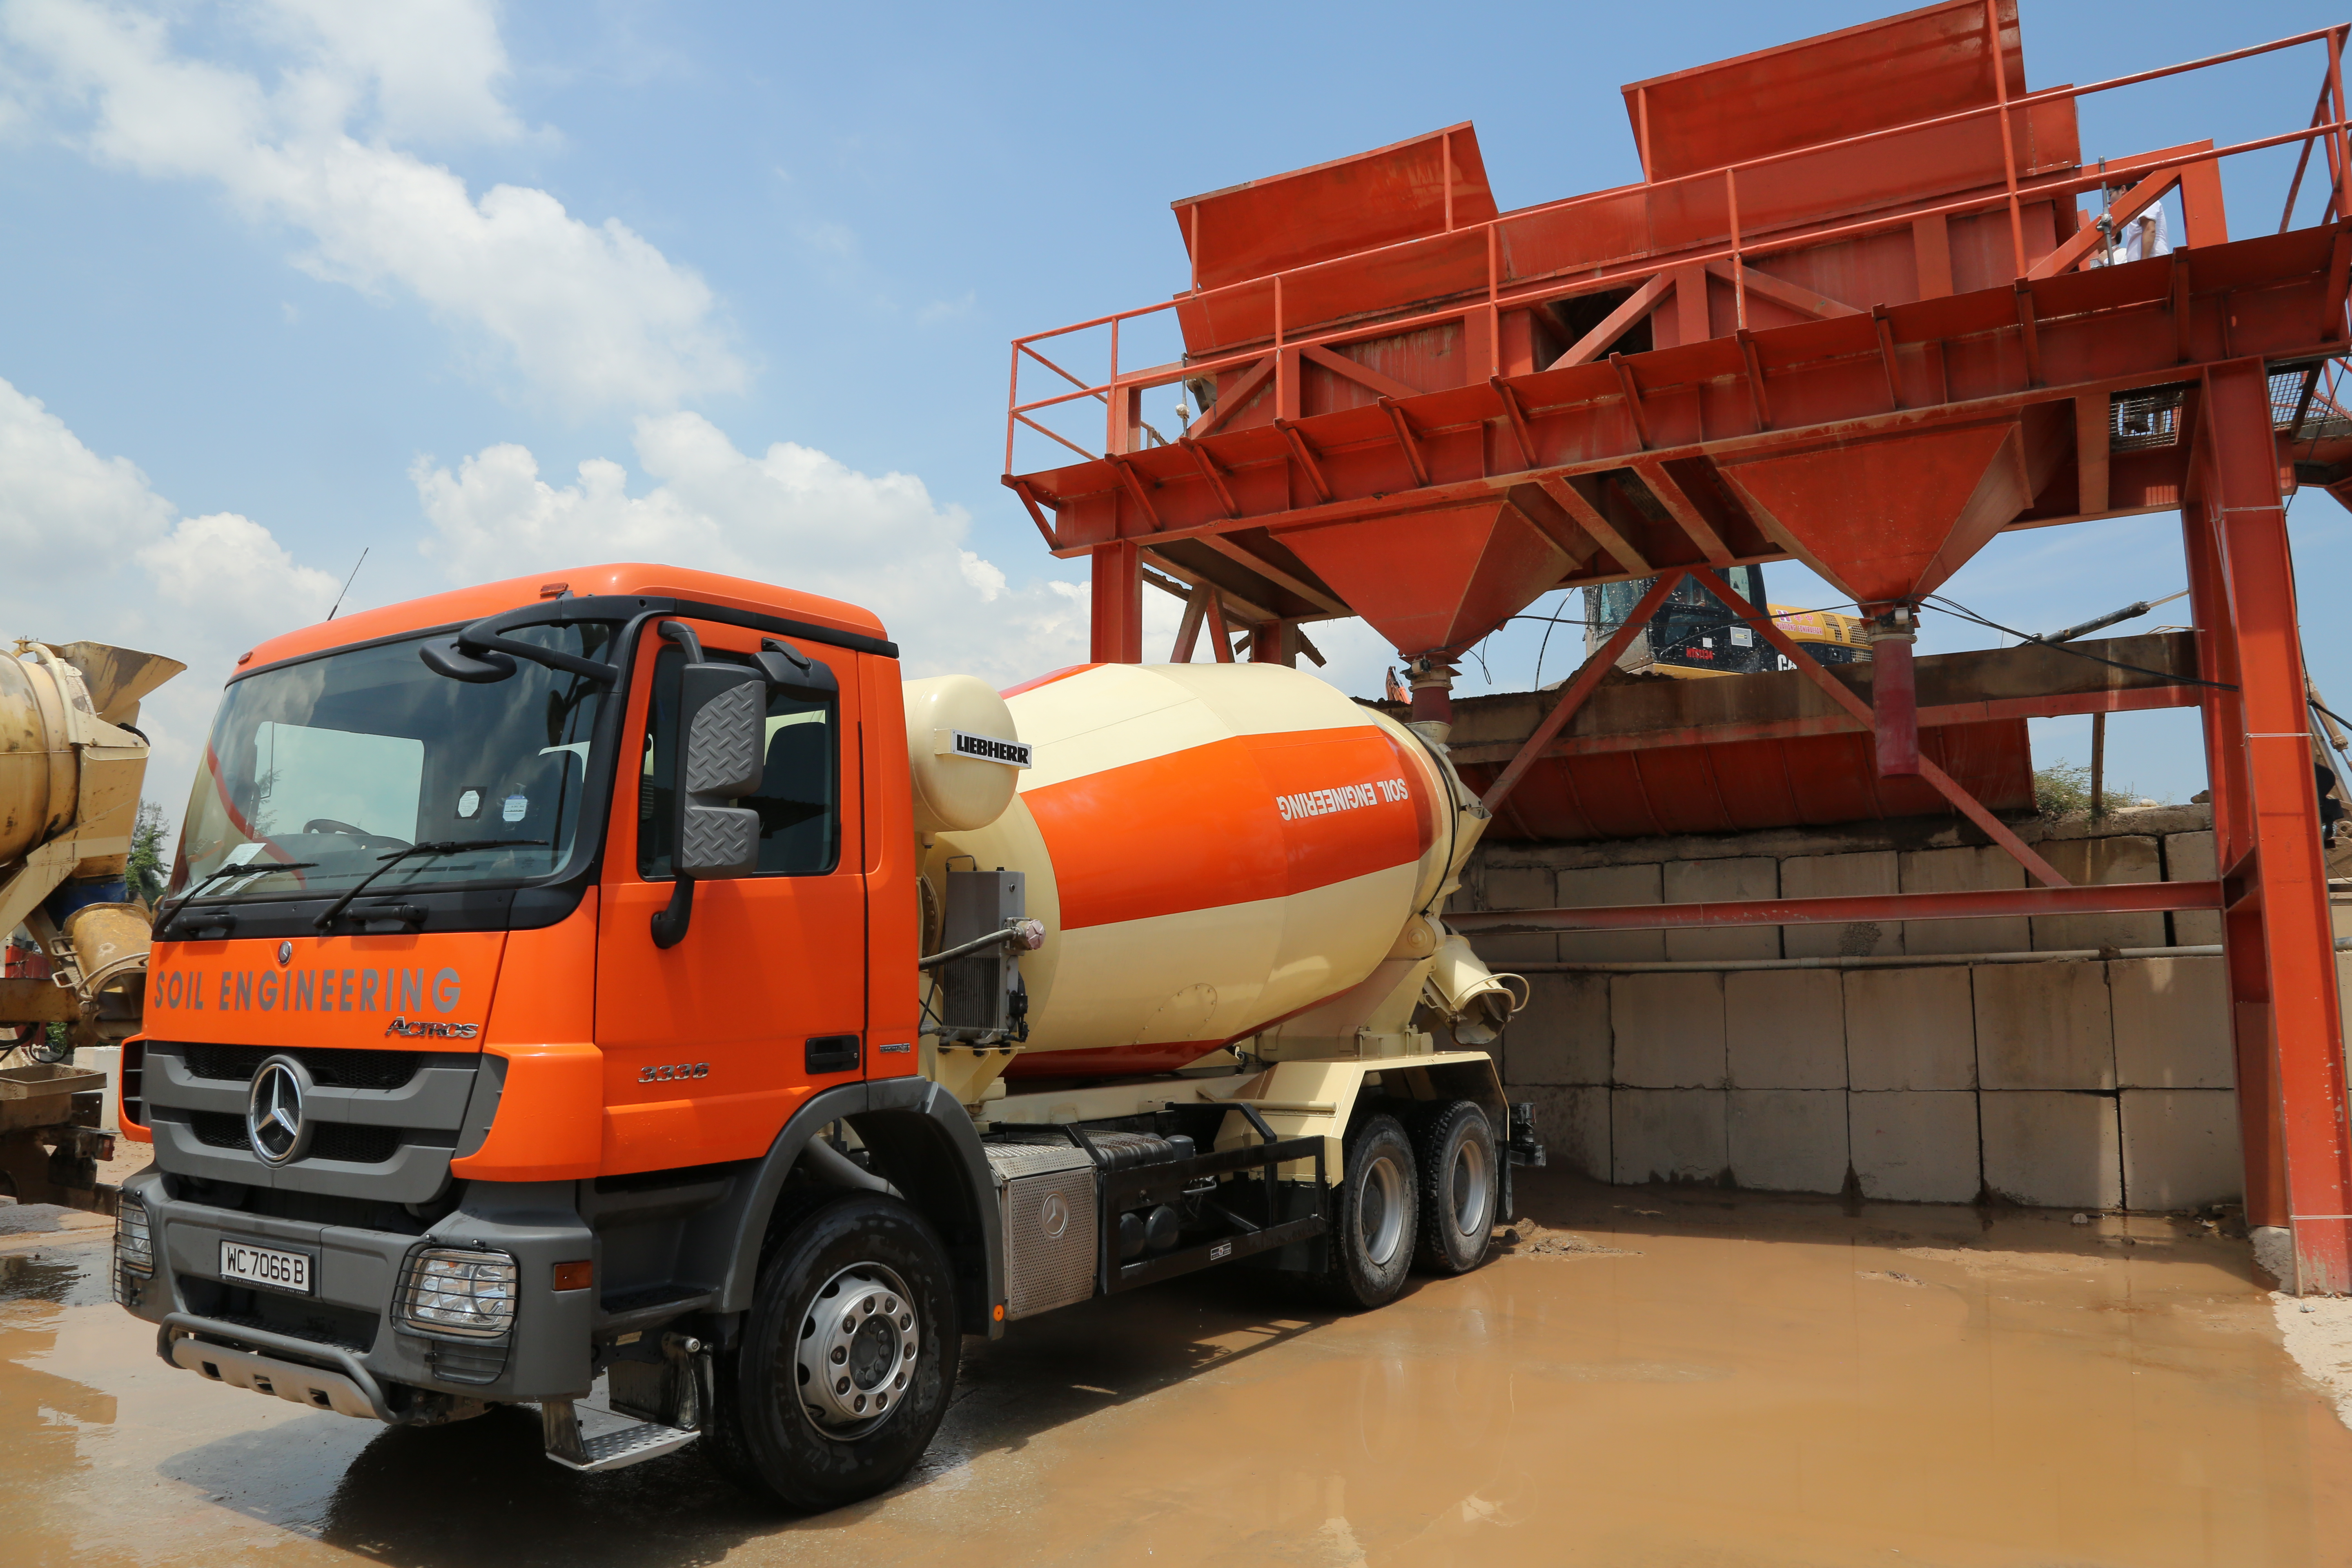 Huationg 174 Global Limited Liquefied Soil Stabilizer